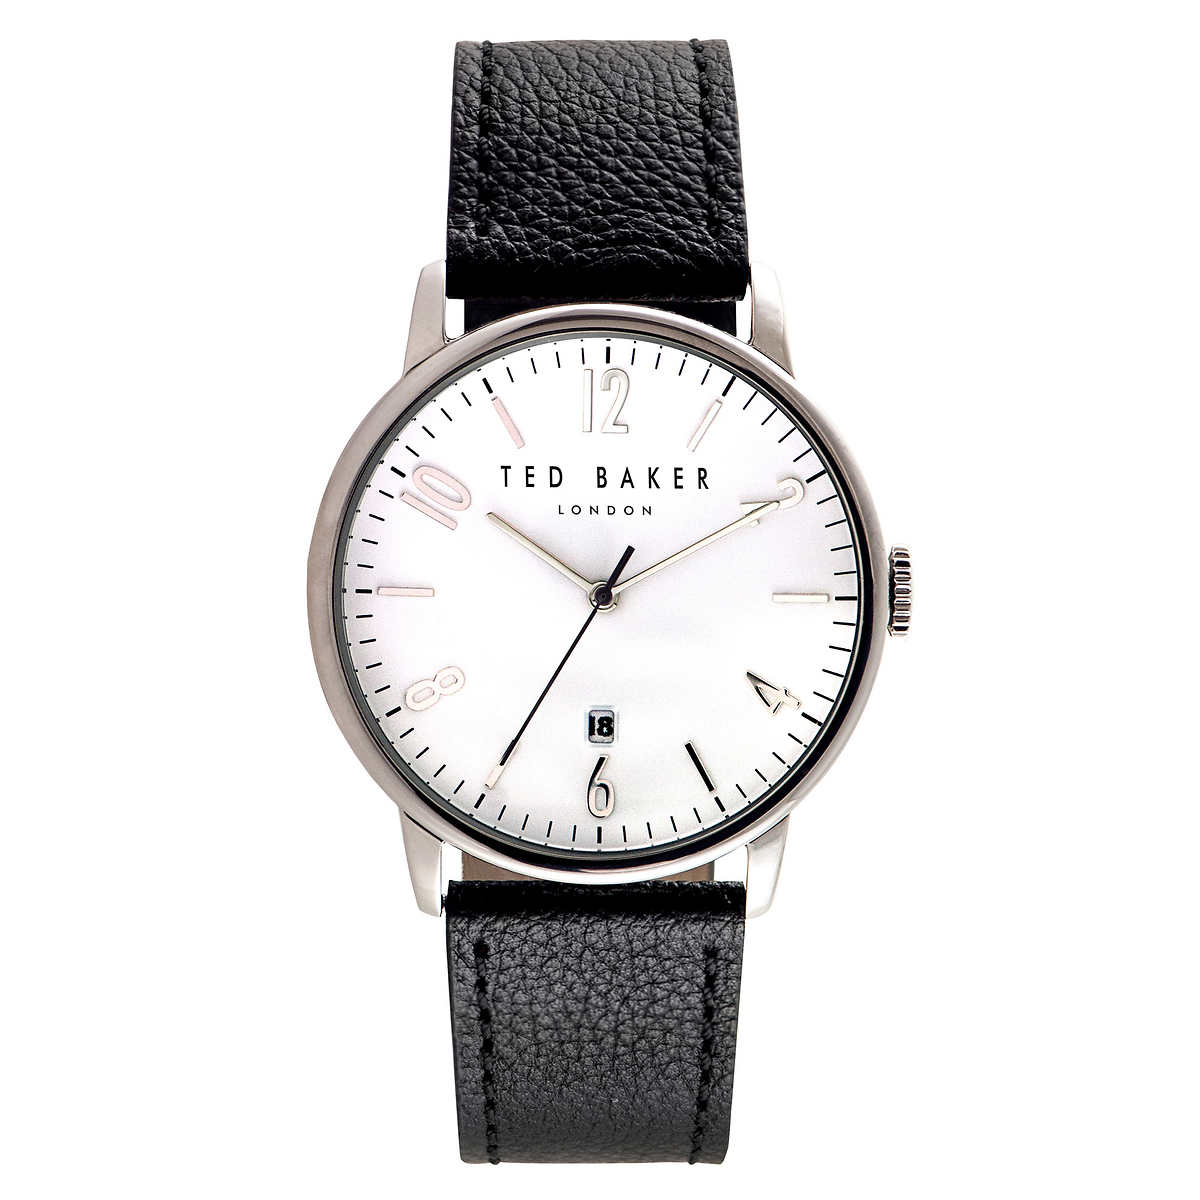 c83ea2899dbc Ted Baker Black Leather Strap Men s Watch. 1 1